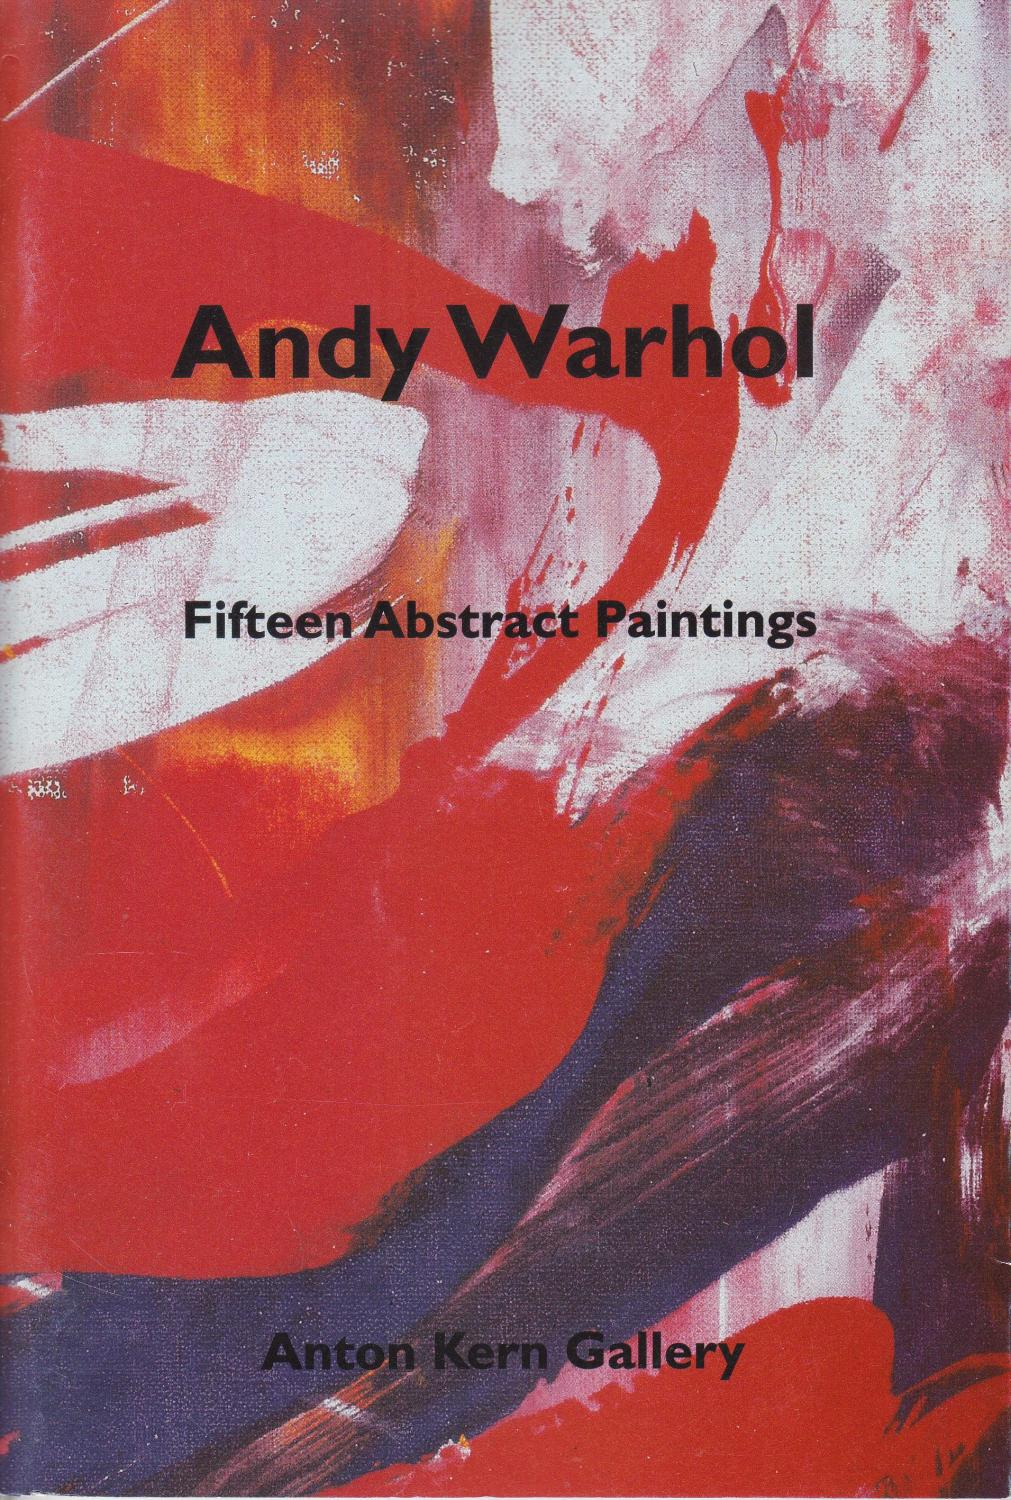 andy warhol fifteen abstract paintings february 6 march 21 1998